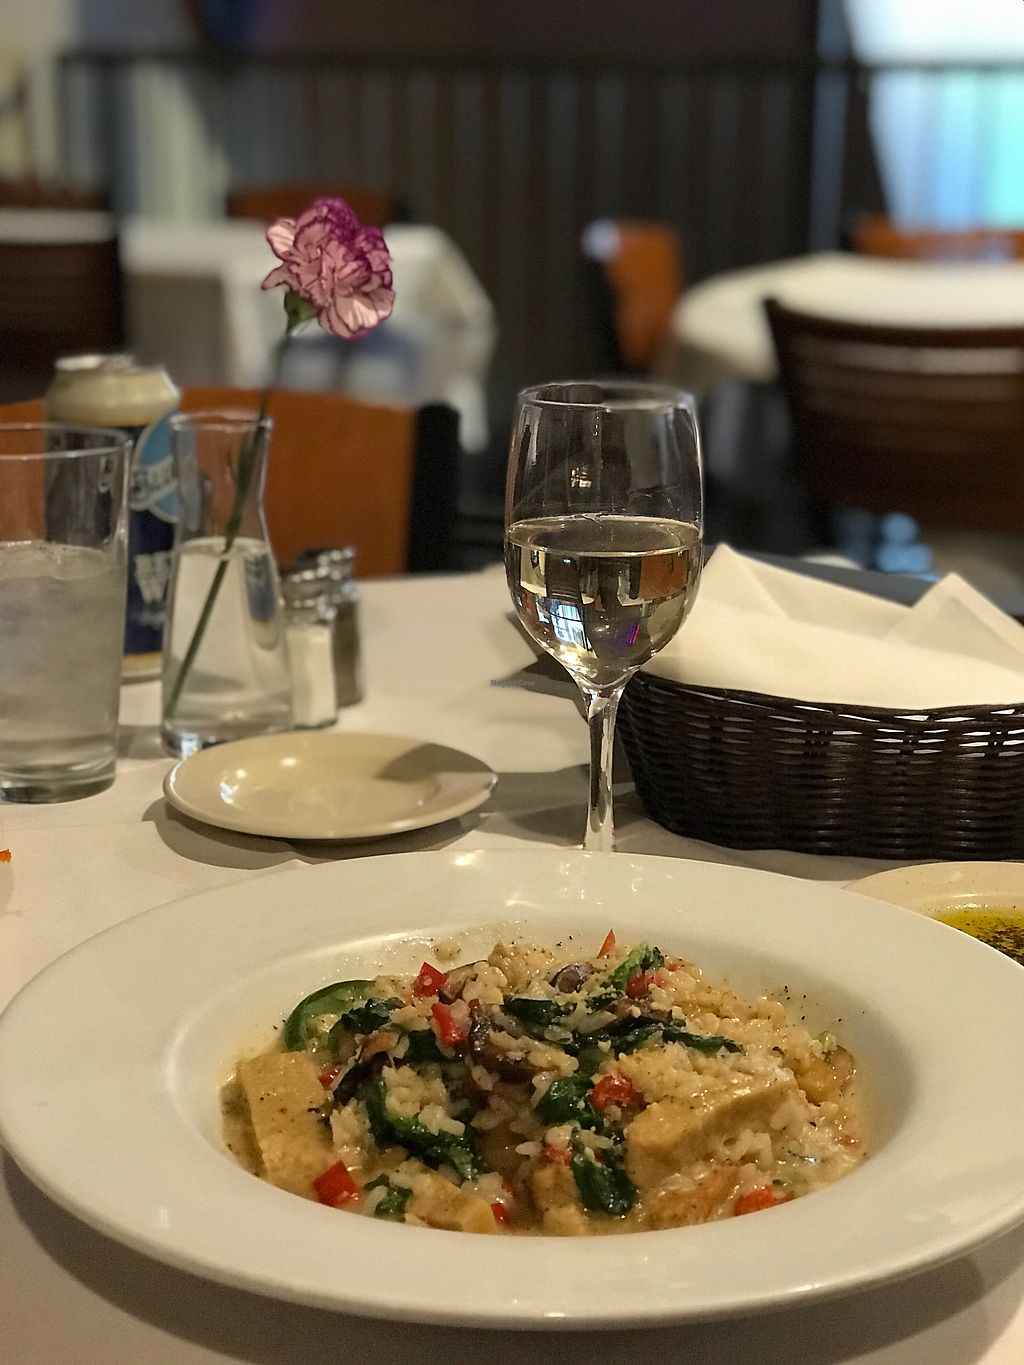 """Photo of Mangia Italiano  by <a href=""""/members/profile/JillFulbrightGray"""">JillFulbrightGray</a> <br/>Mushroom and seitan risotto  <br/> April 6, 2018  - <a href='/contact/abuse/image/111015/381390'>Report</a>"""